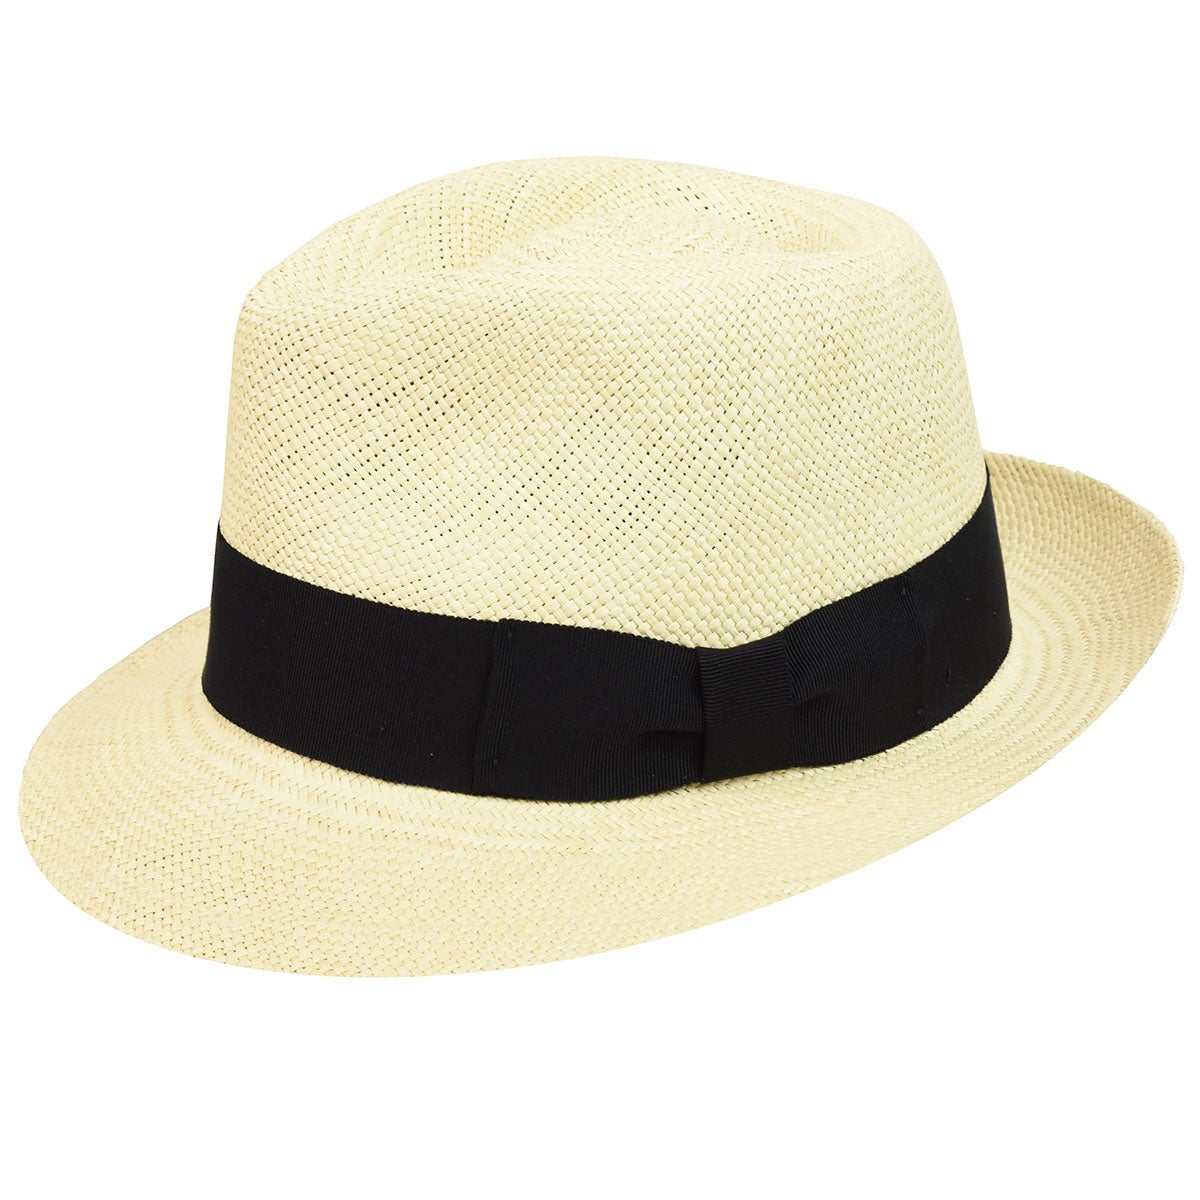 1950s Mens Hats | 50s Vintage Men's Hats Havana Panama Fedora $75.00 AT vintagedancer.com